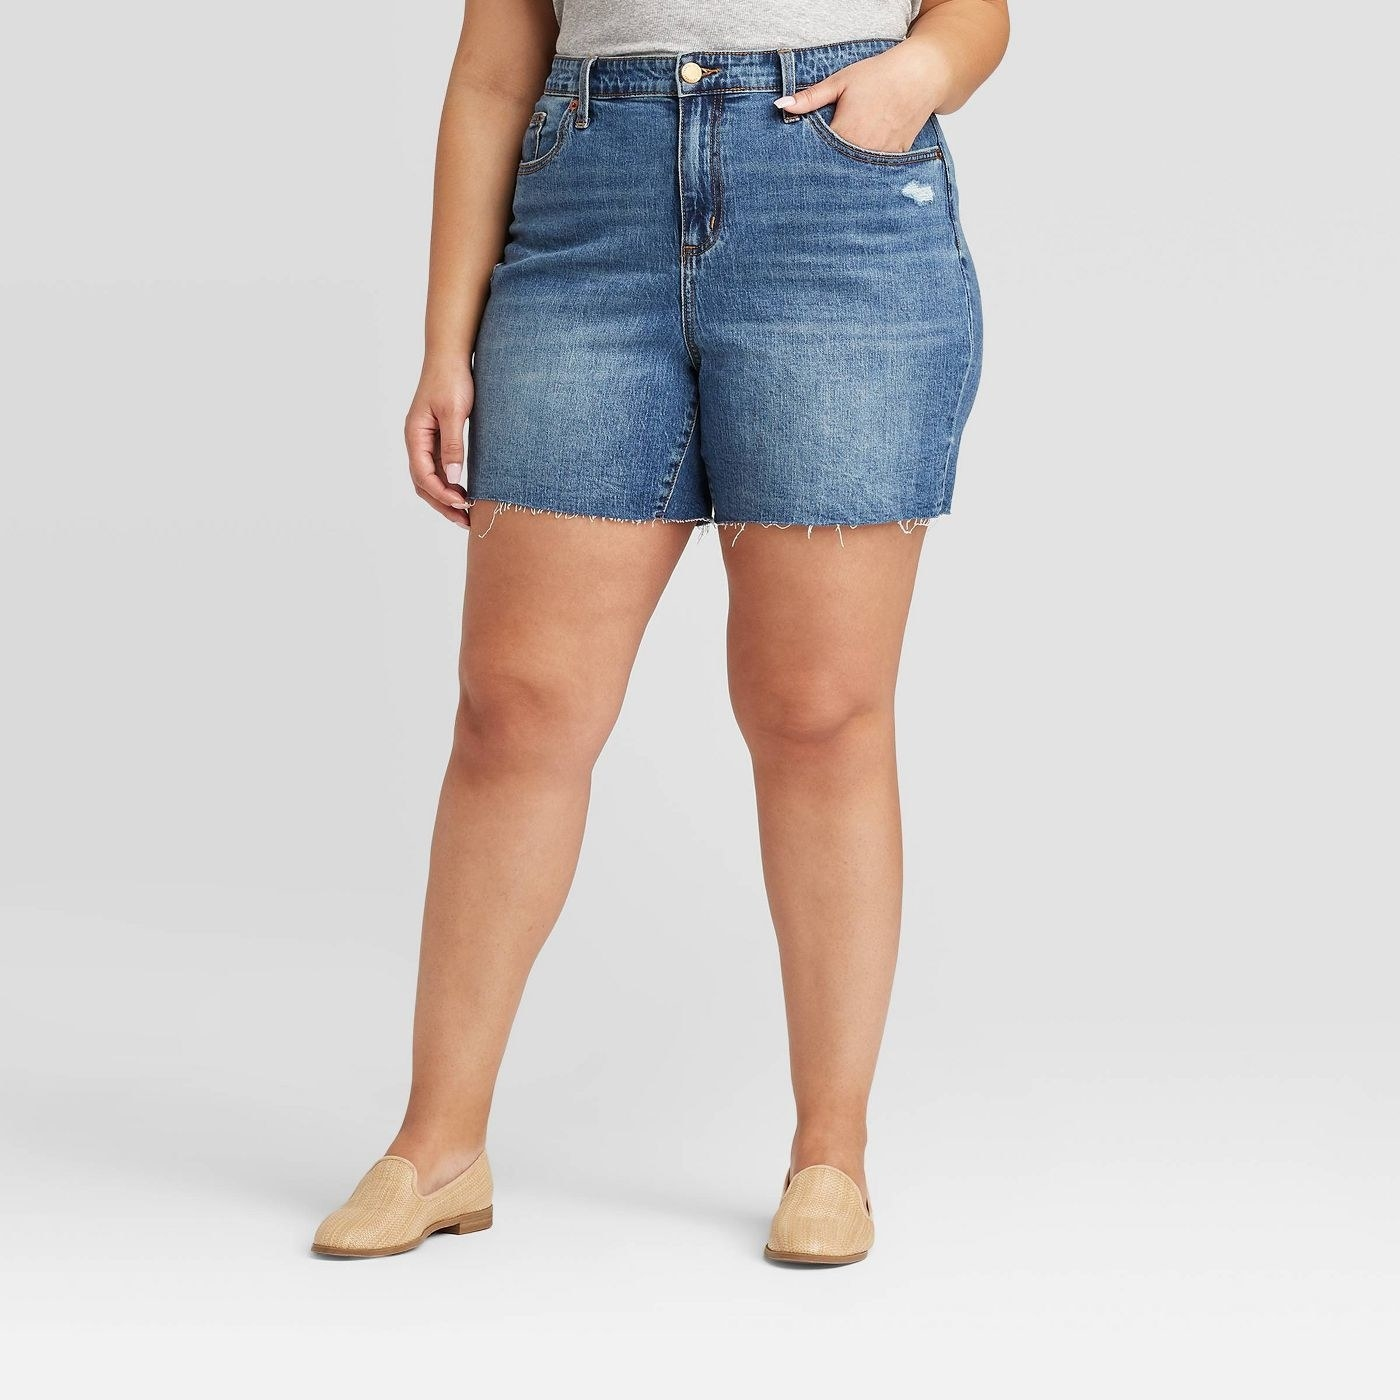 A model in the jean shorts